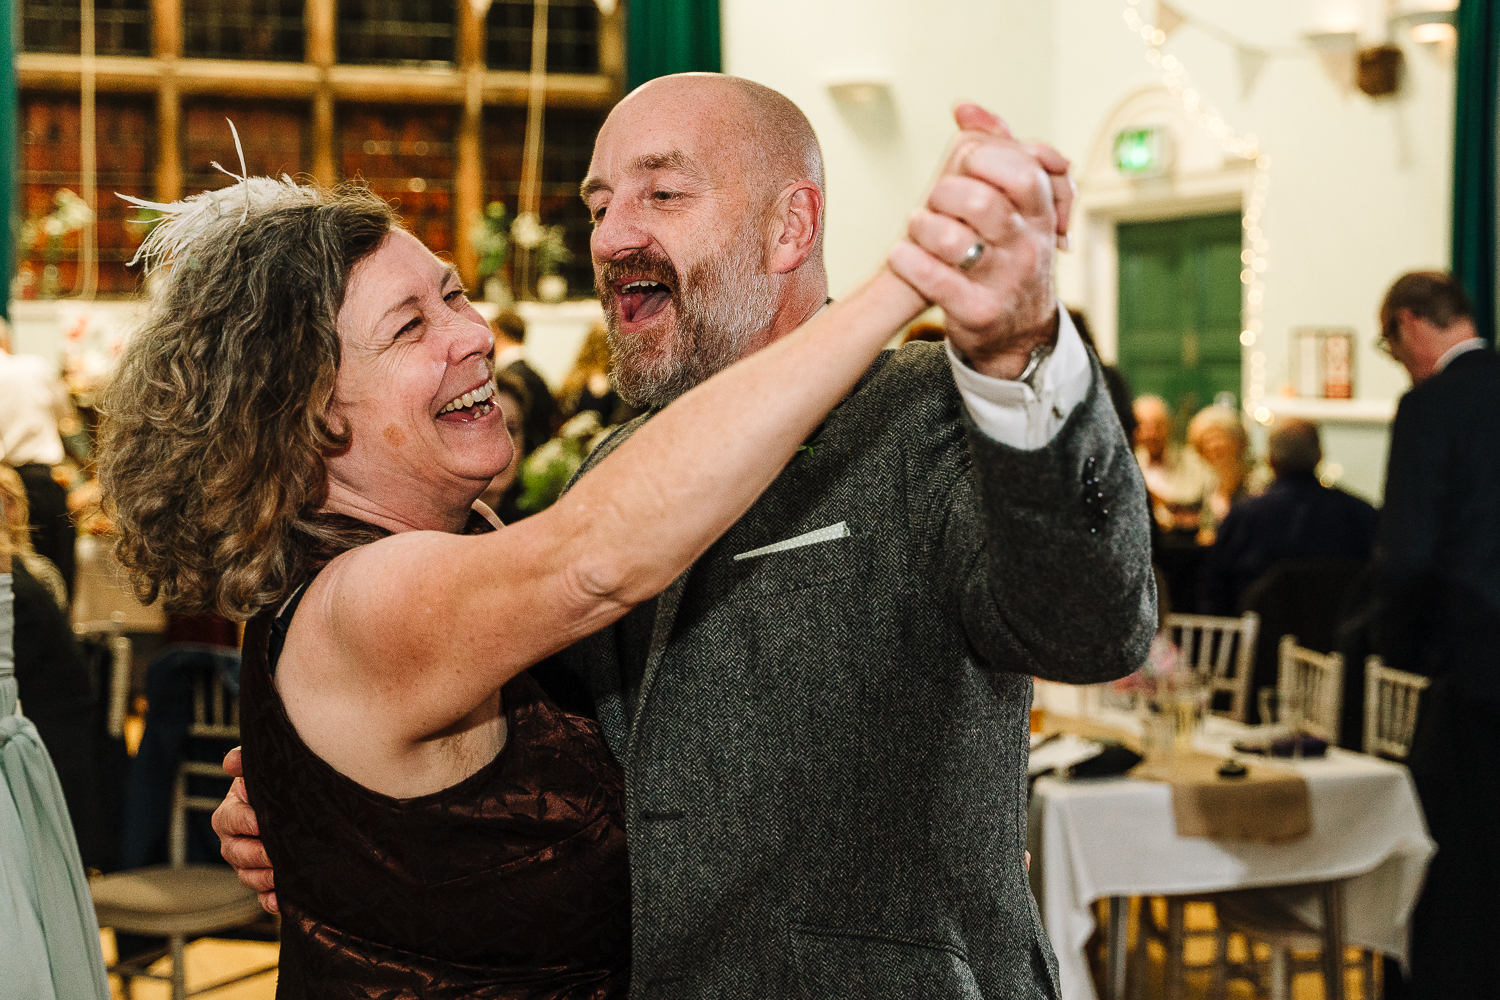 Father of bride dancing with guest